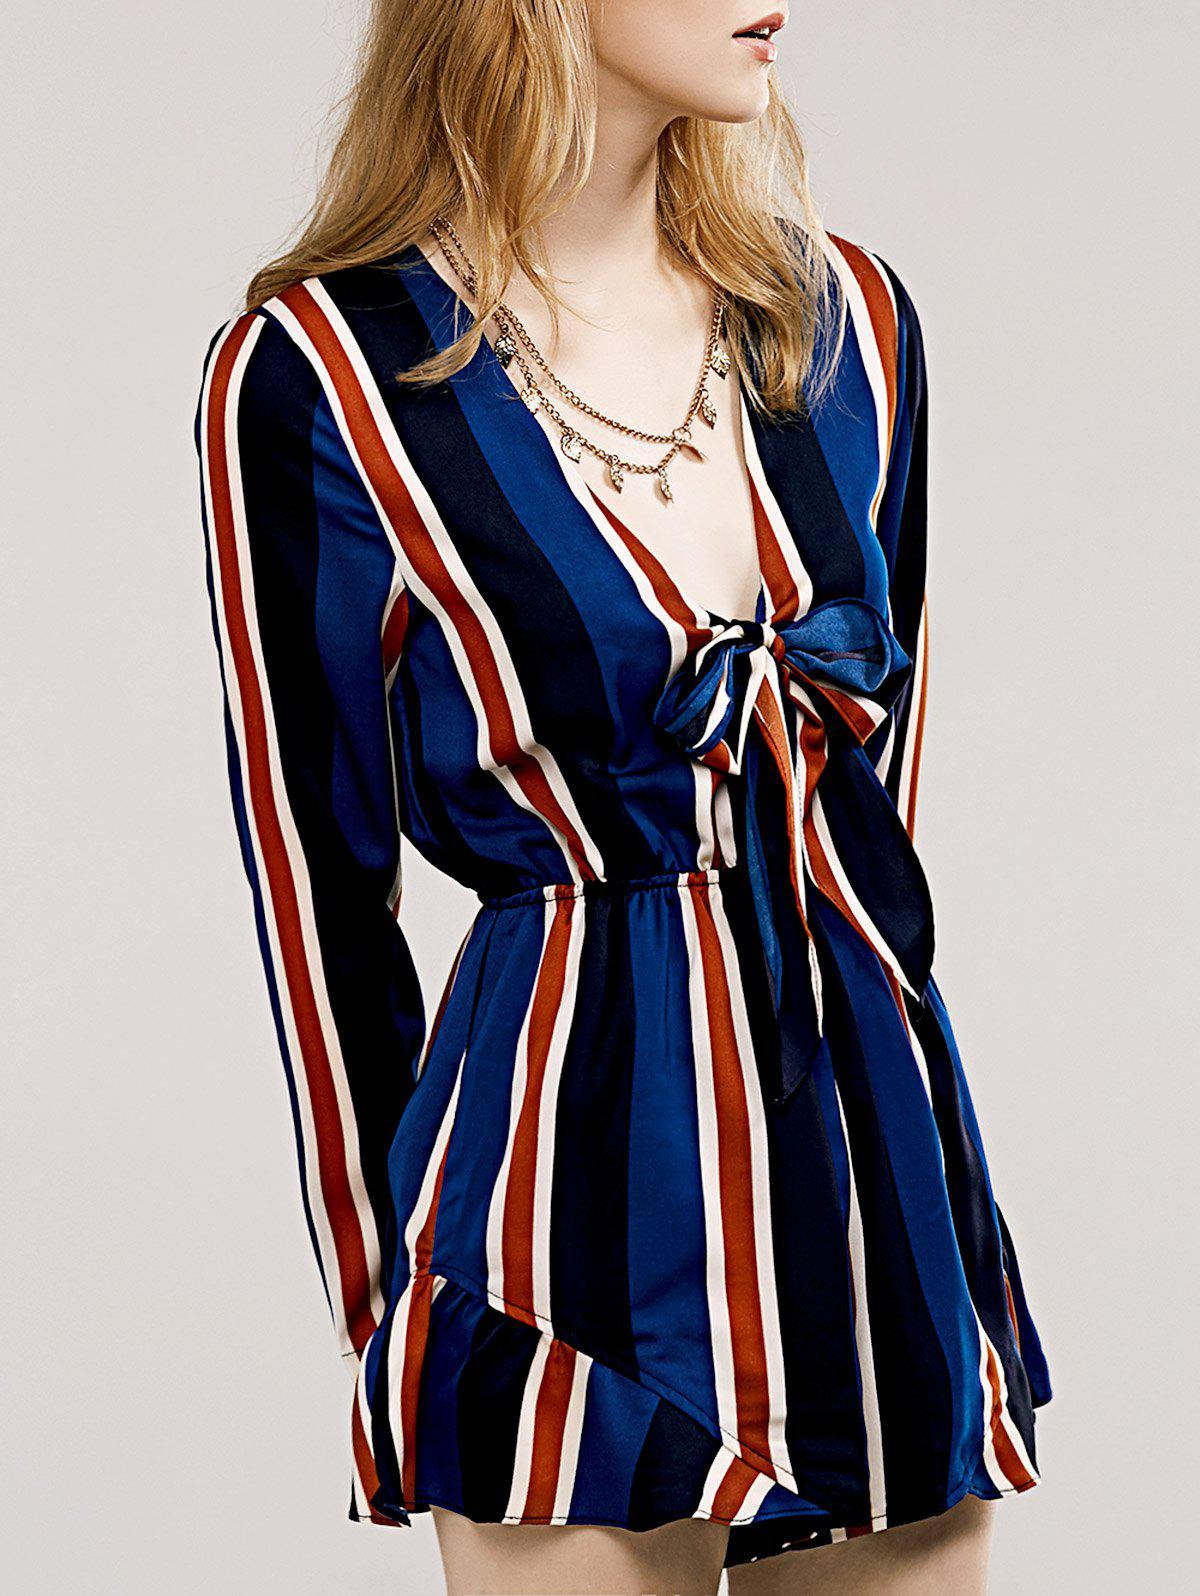 Stylish Women's Plunging Neck Striped Flounce Romper - DEEP BLUE L